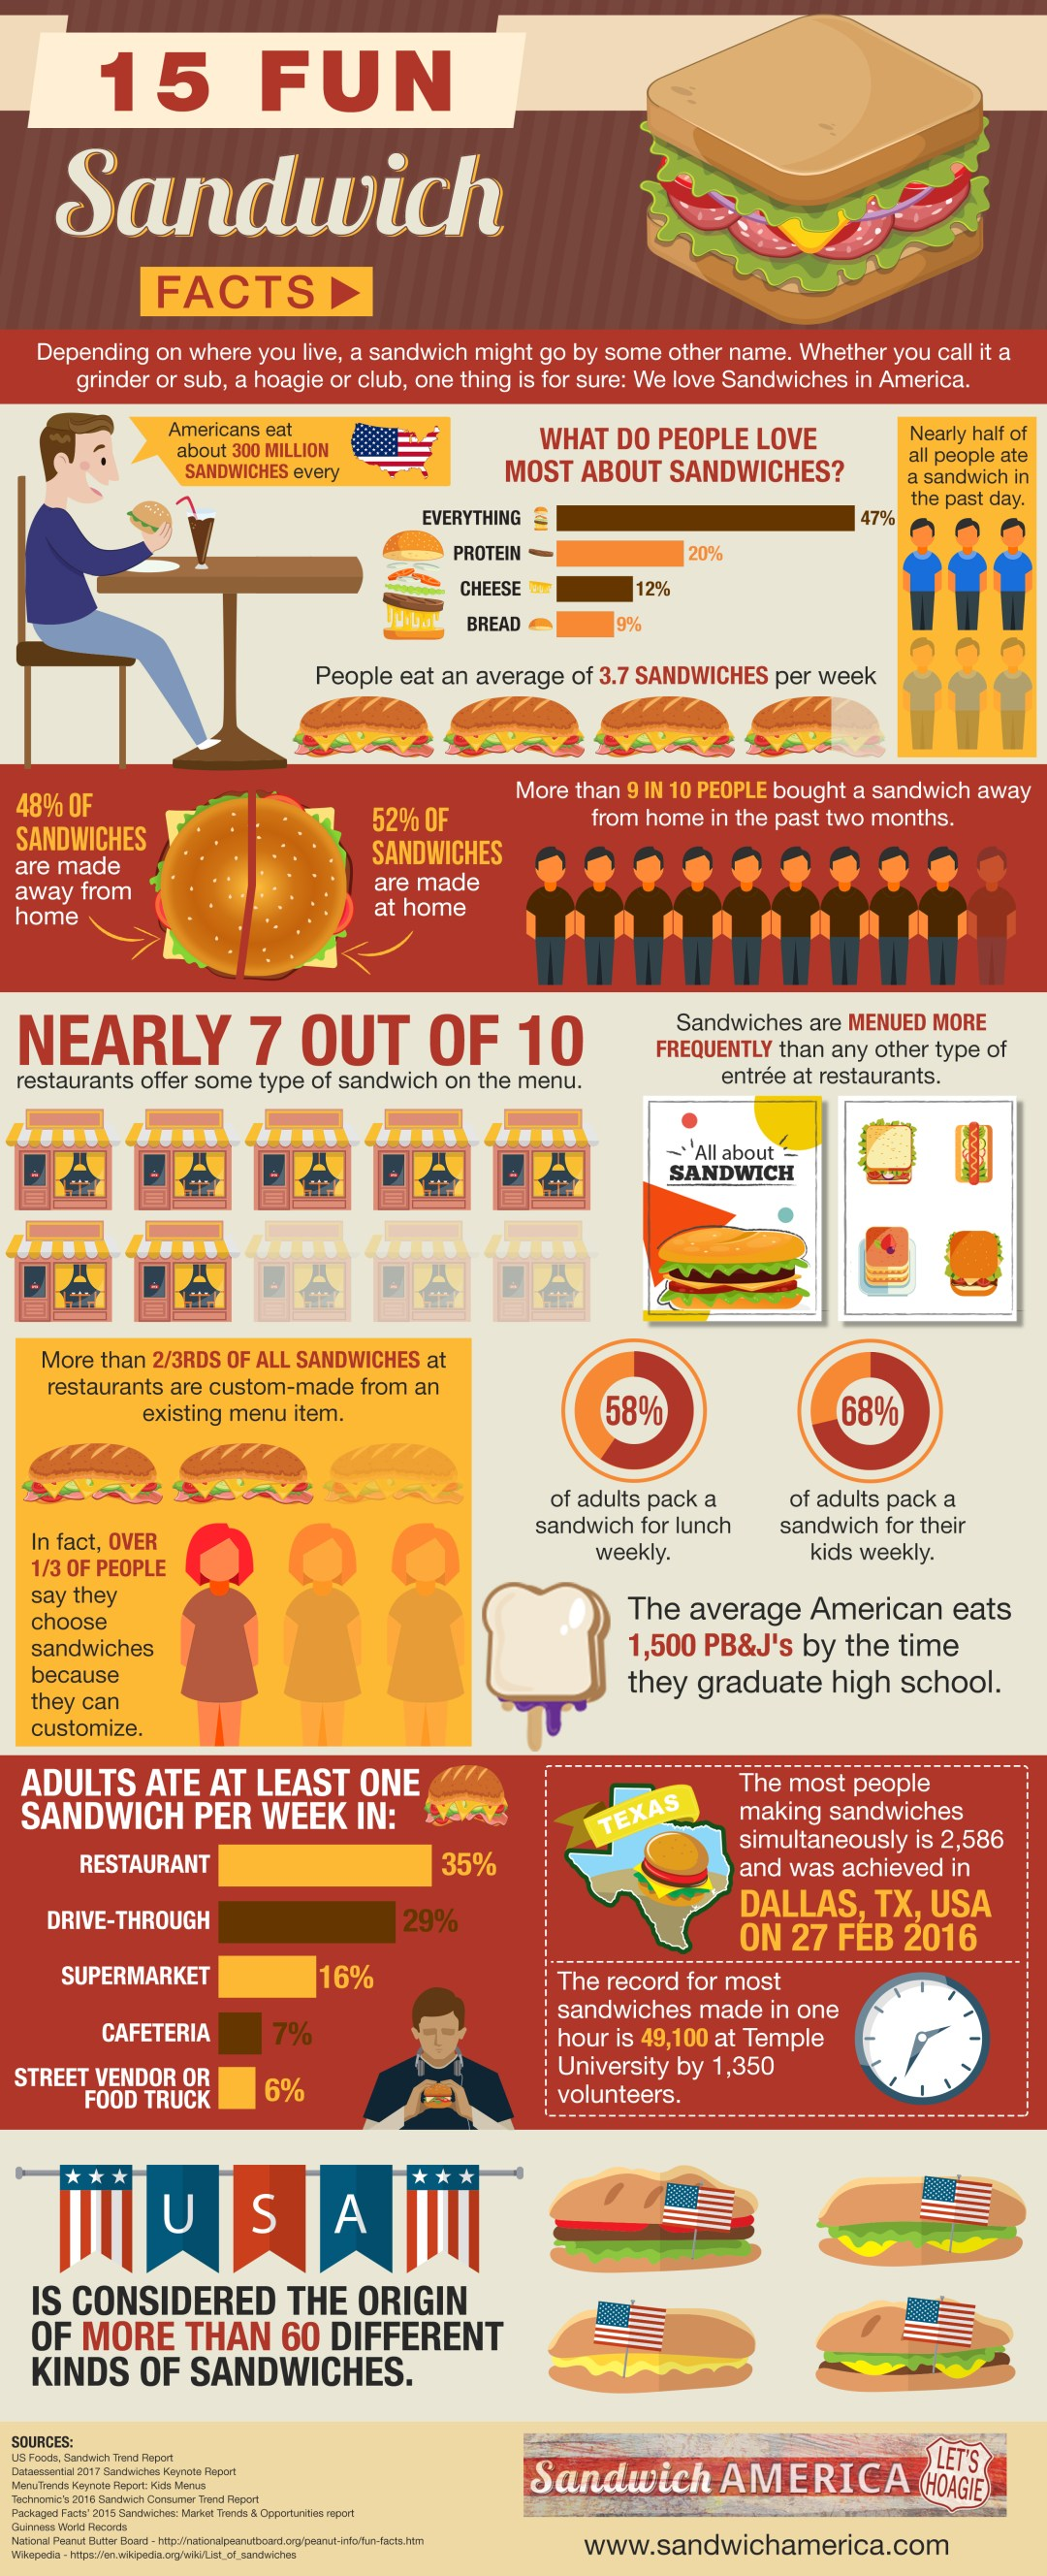 15 Fun Sandwich Facts Infographic